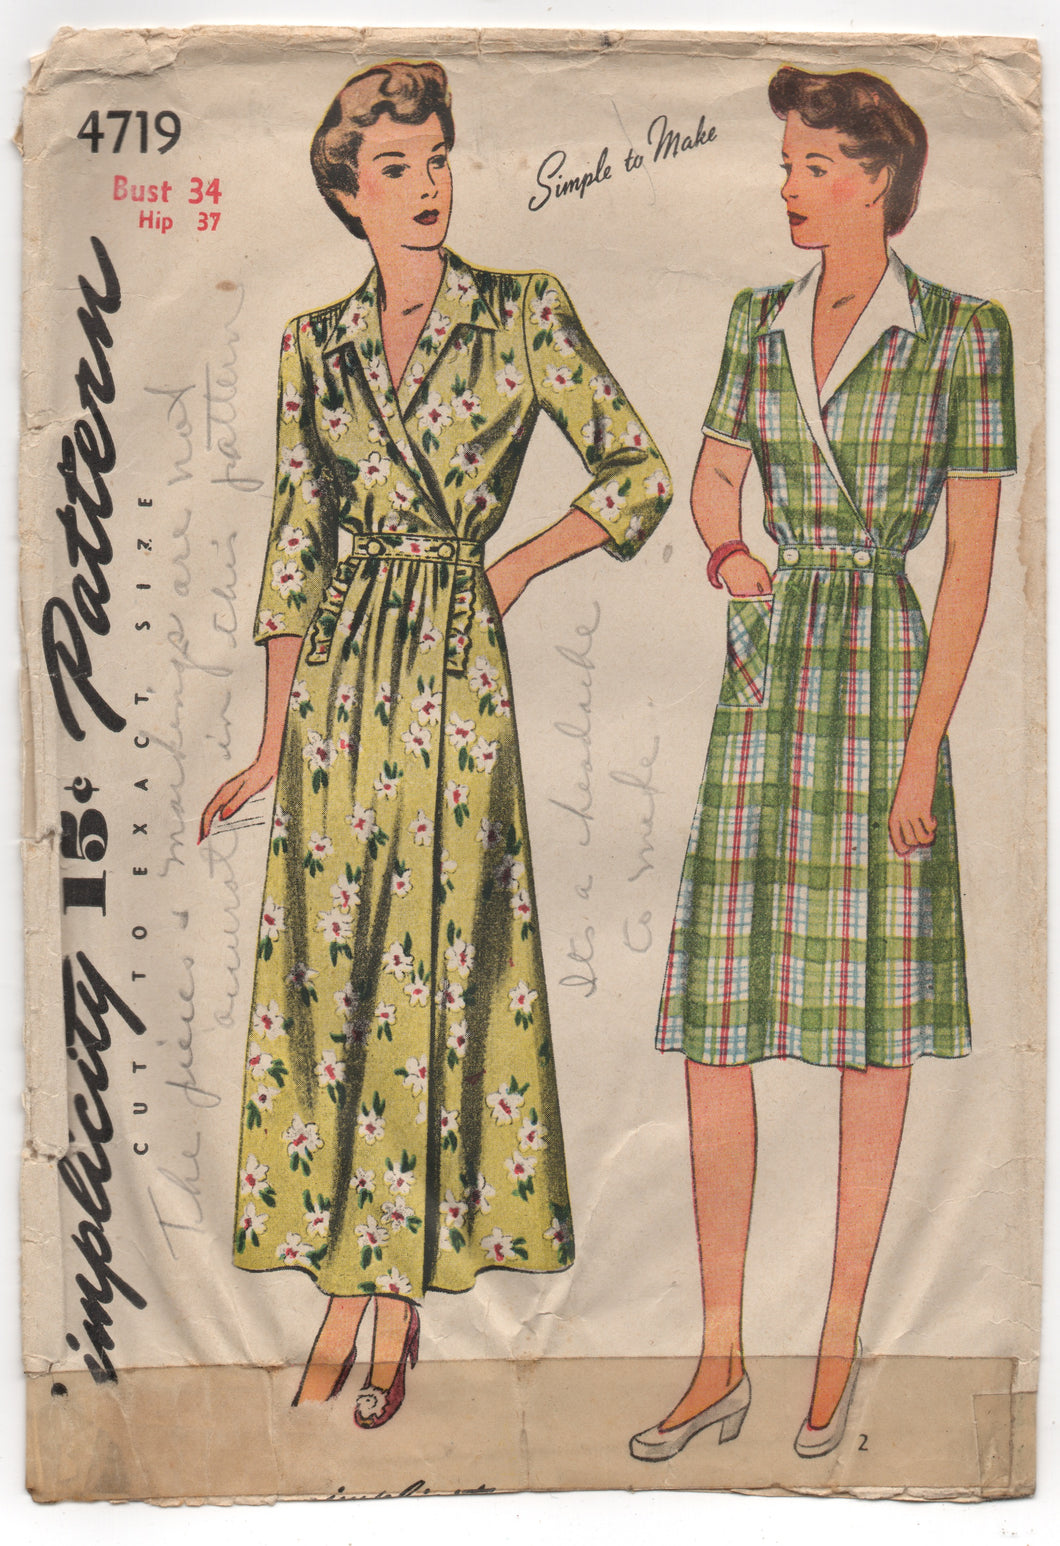 1940's Simplicity Housecoat or Dress with Pocket - Bust 34